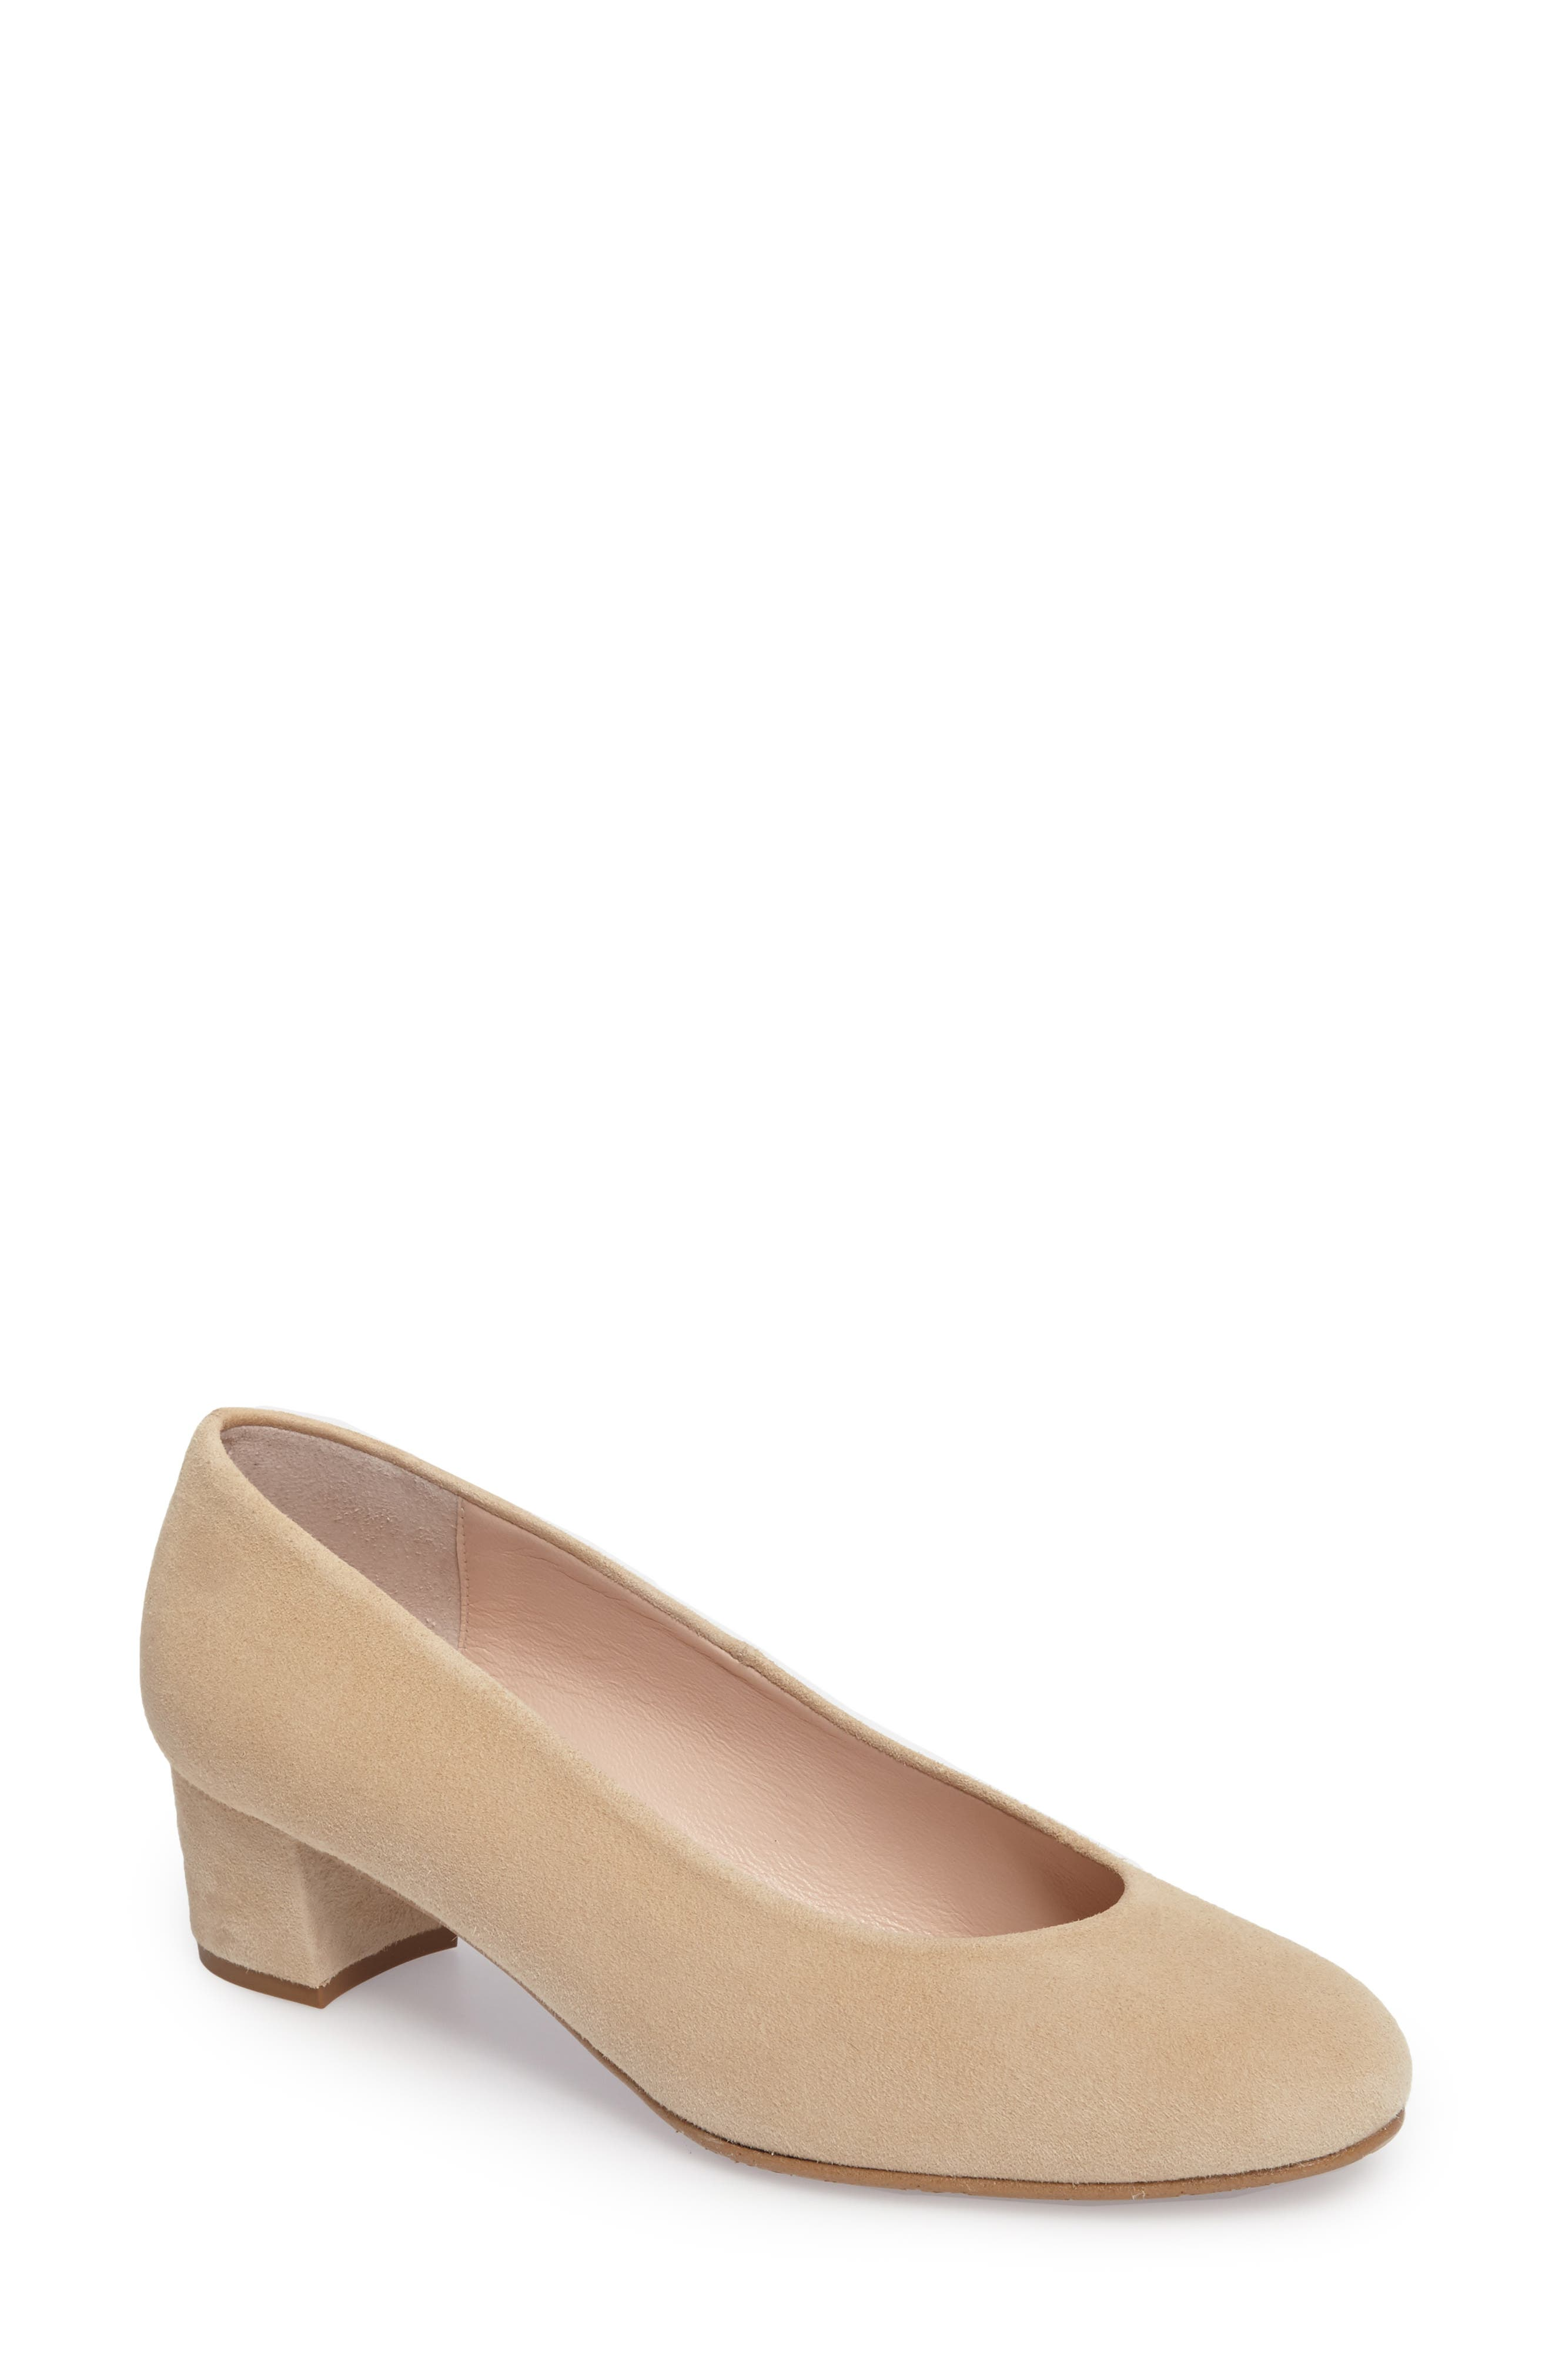 patricia green Jasmine Pump (Women)